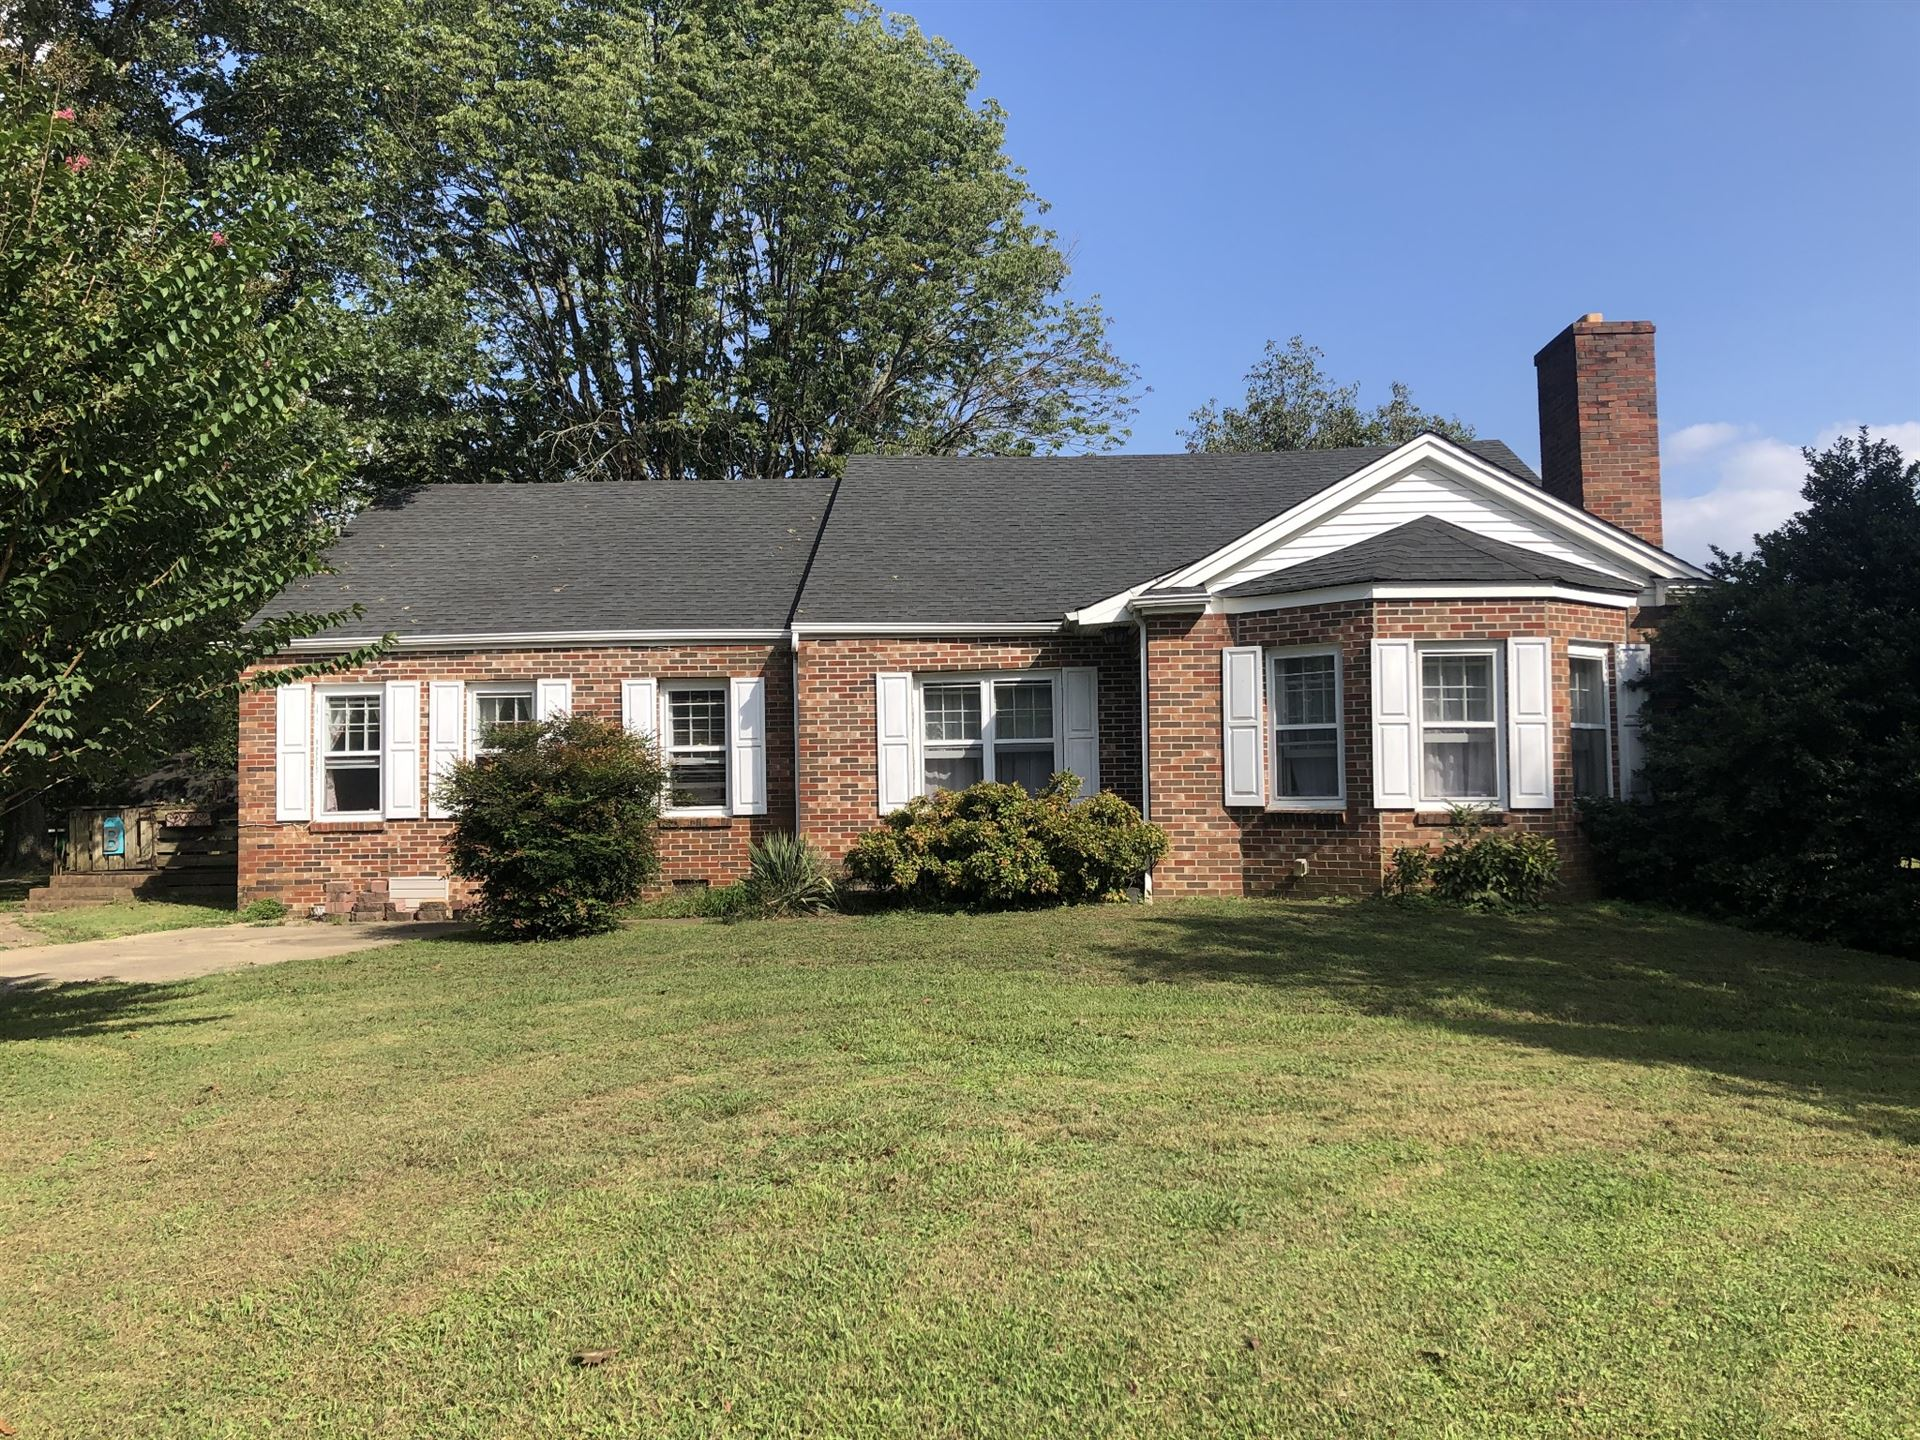 243 Elm Ave, Lewisburg, TN 37091 - MLS#: 2191780